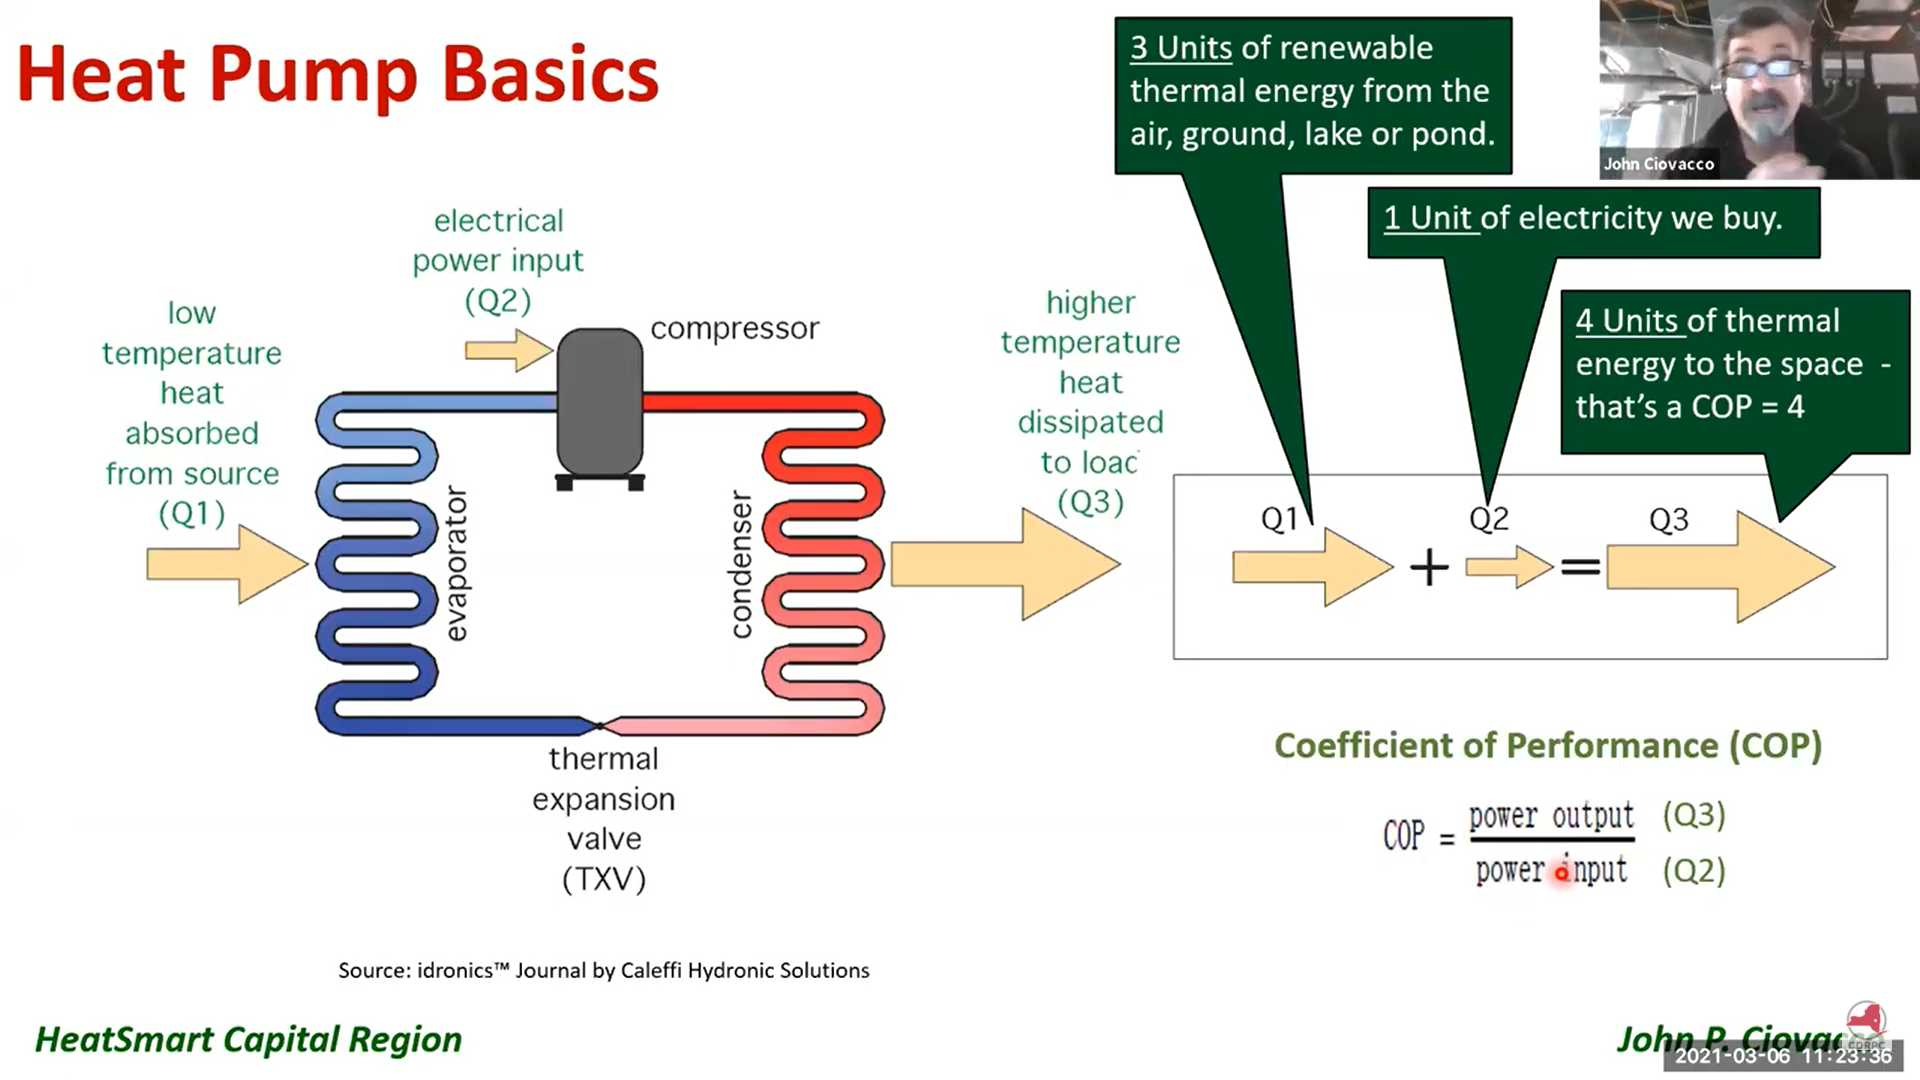 Presentation for CASE Renewable Energy Fair on Heat Pumps by John Ciovacco of Aztech Geothermal